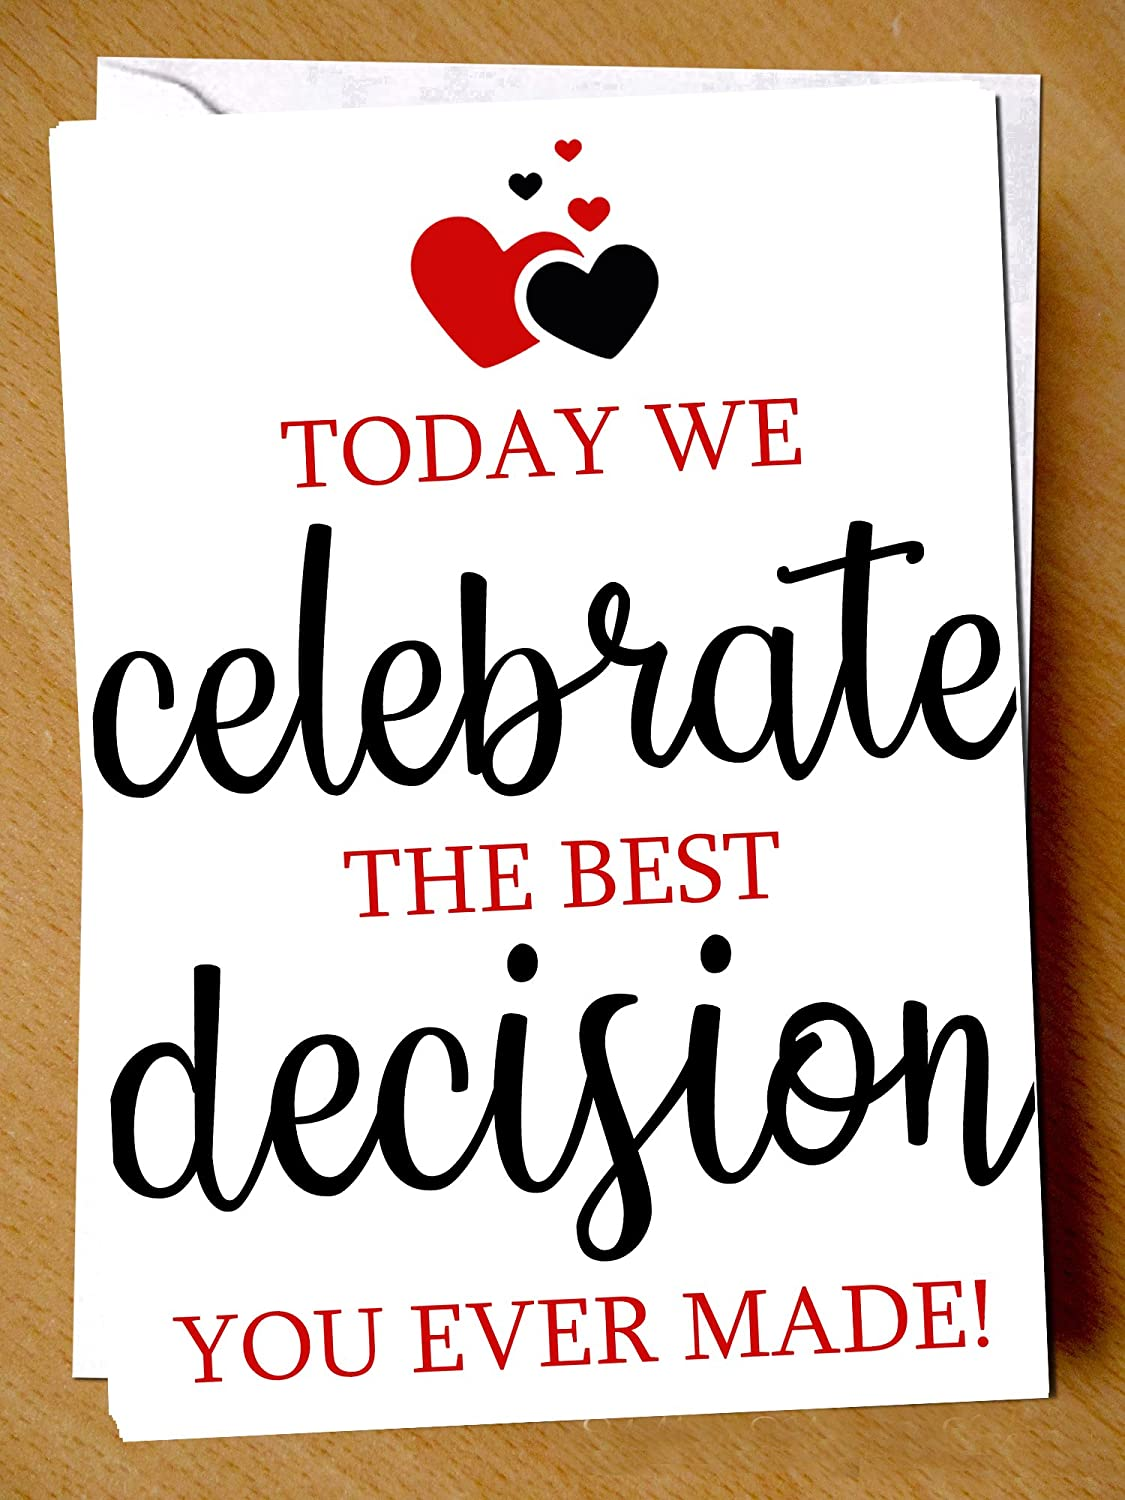 Funny Anniversary Valentines Day Christmas Birthday Greetings Card Today We Celebrate The Best Decision You Ever Made Hilarious Comical Humour Fun Witty